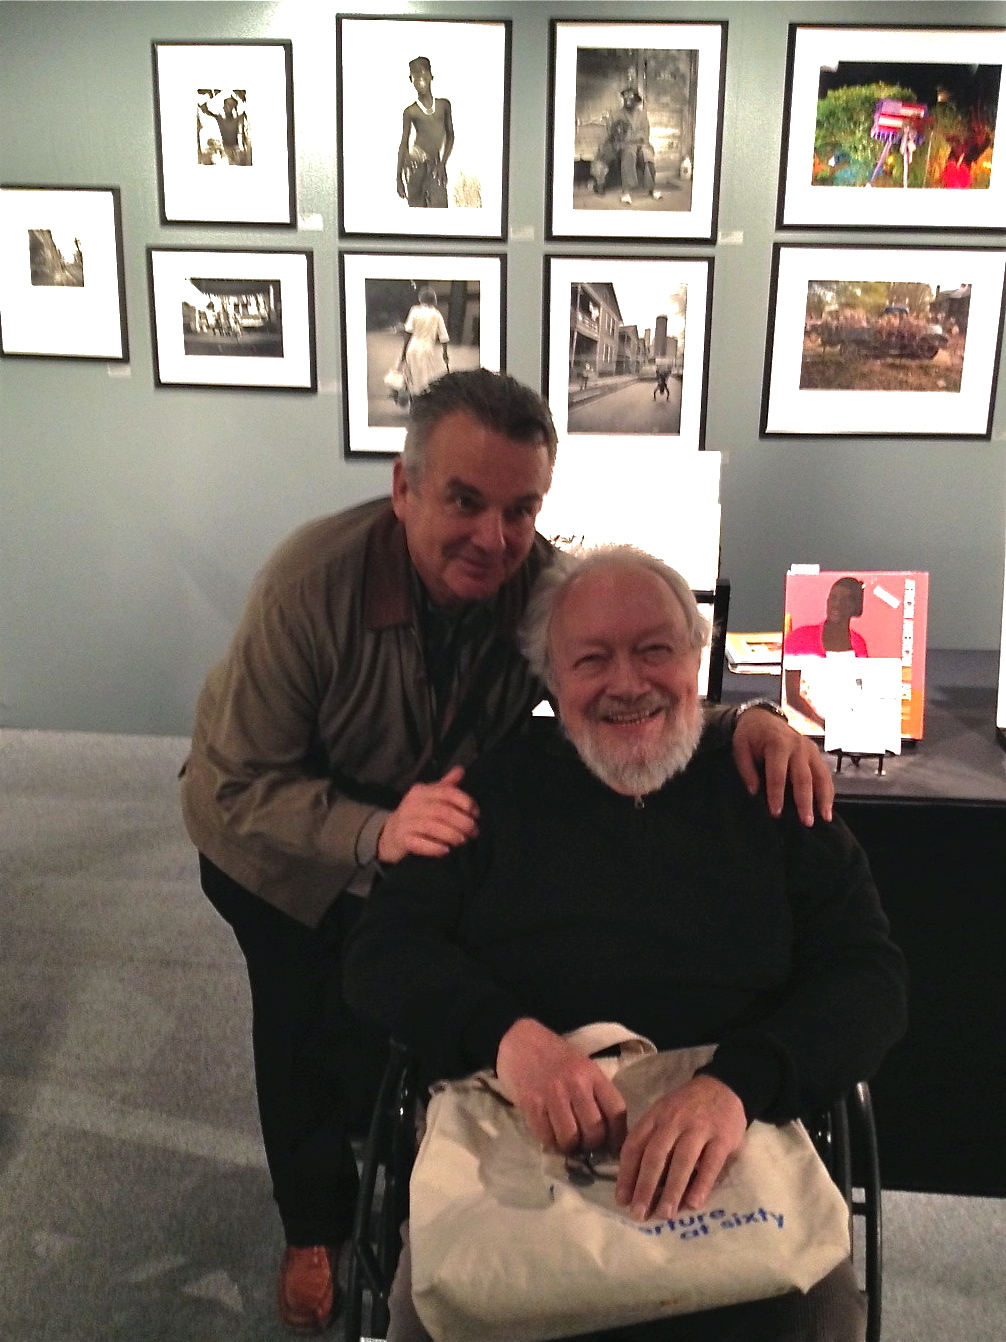 Here I am with Burt Finger from Photos Do Not Bend